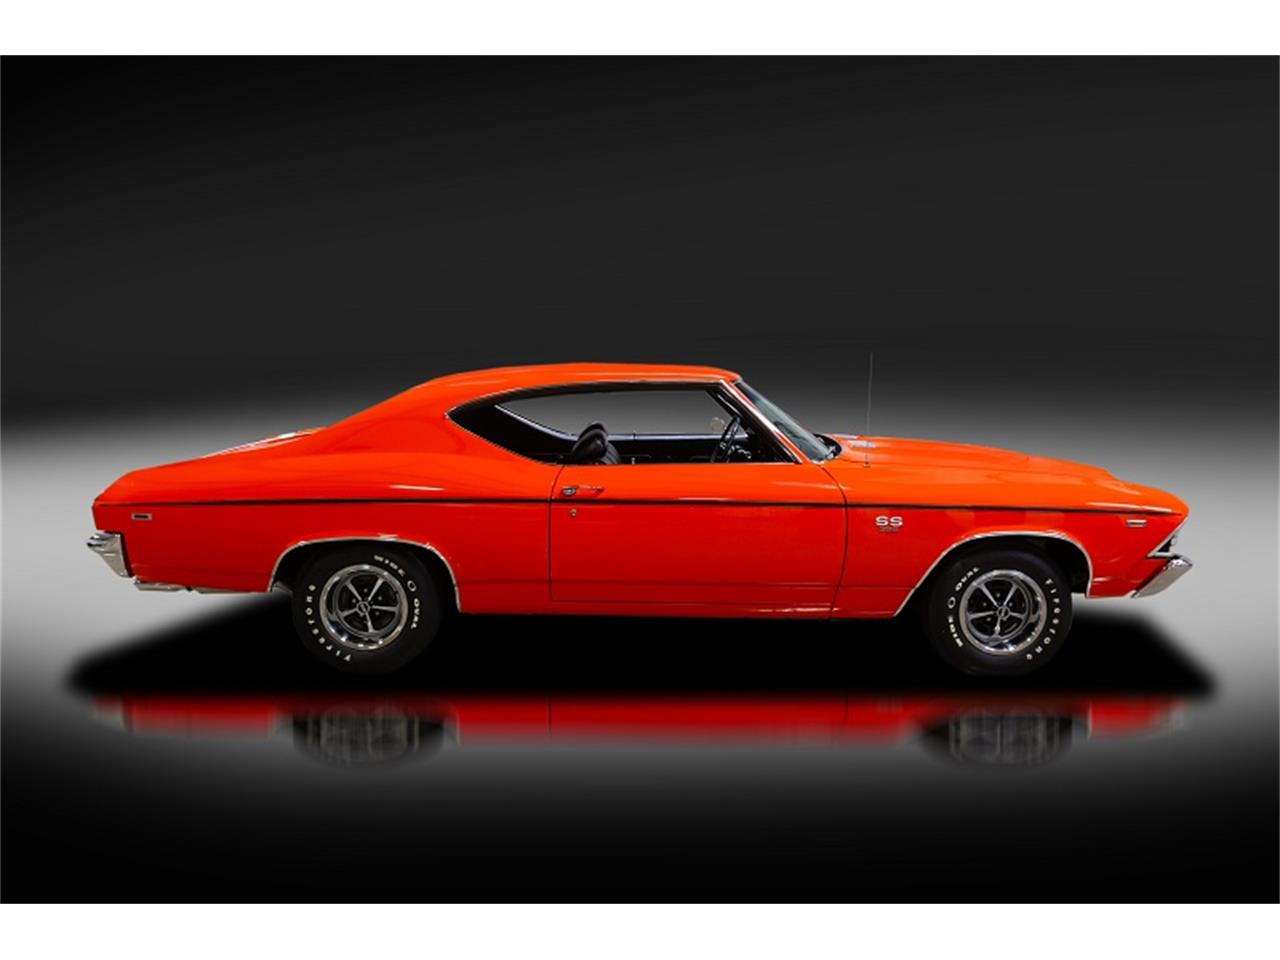 Large Picture of Classic 1969 Chevrolet Chevelle SS located in Pennsylvania Auction Vehicle Offered by Central Pennsylvania Auto Auction - Q5CY